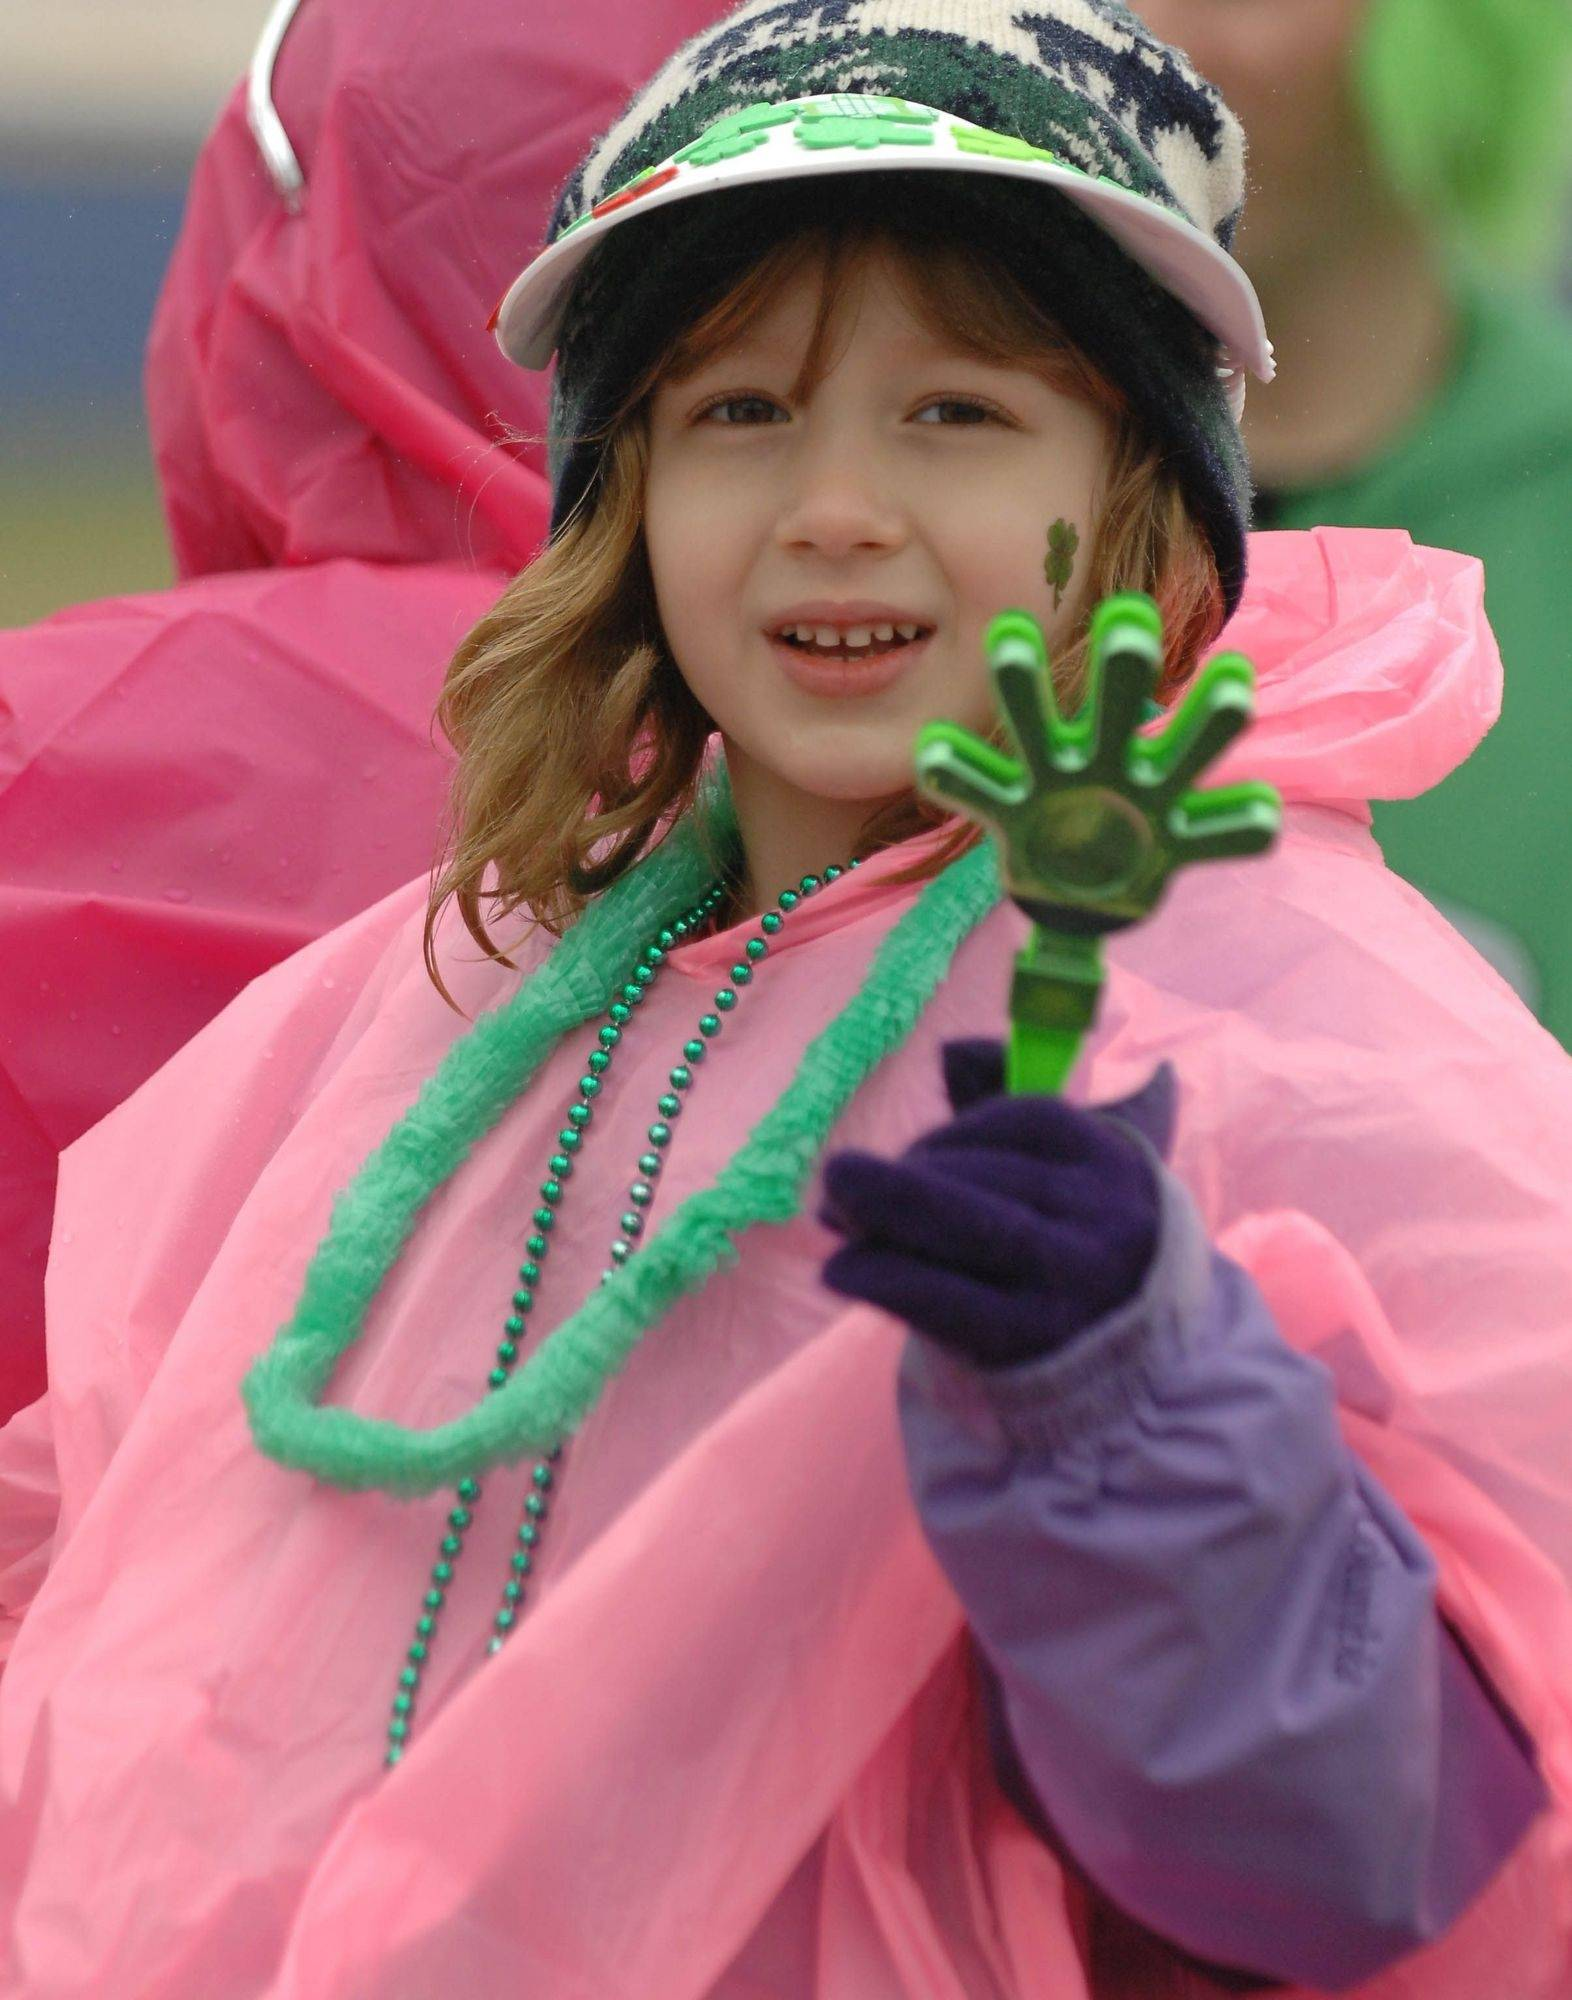 Reganne Nash, 5, of Glen Ellyn makes some noise with a hand clapper Saturday during the West Suburban Irish St. Patrick's Day Parade in Naperville.